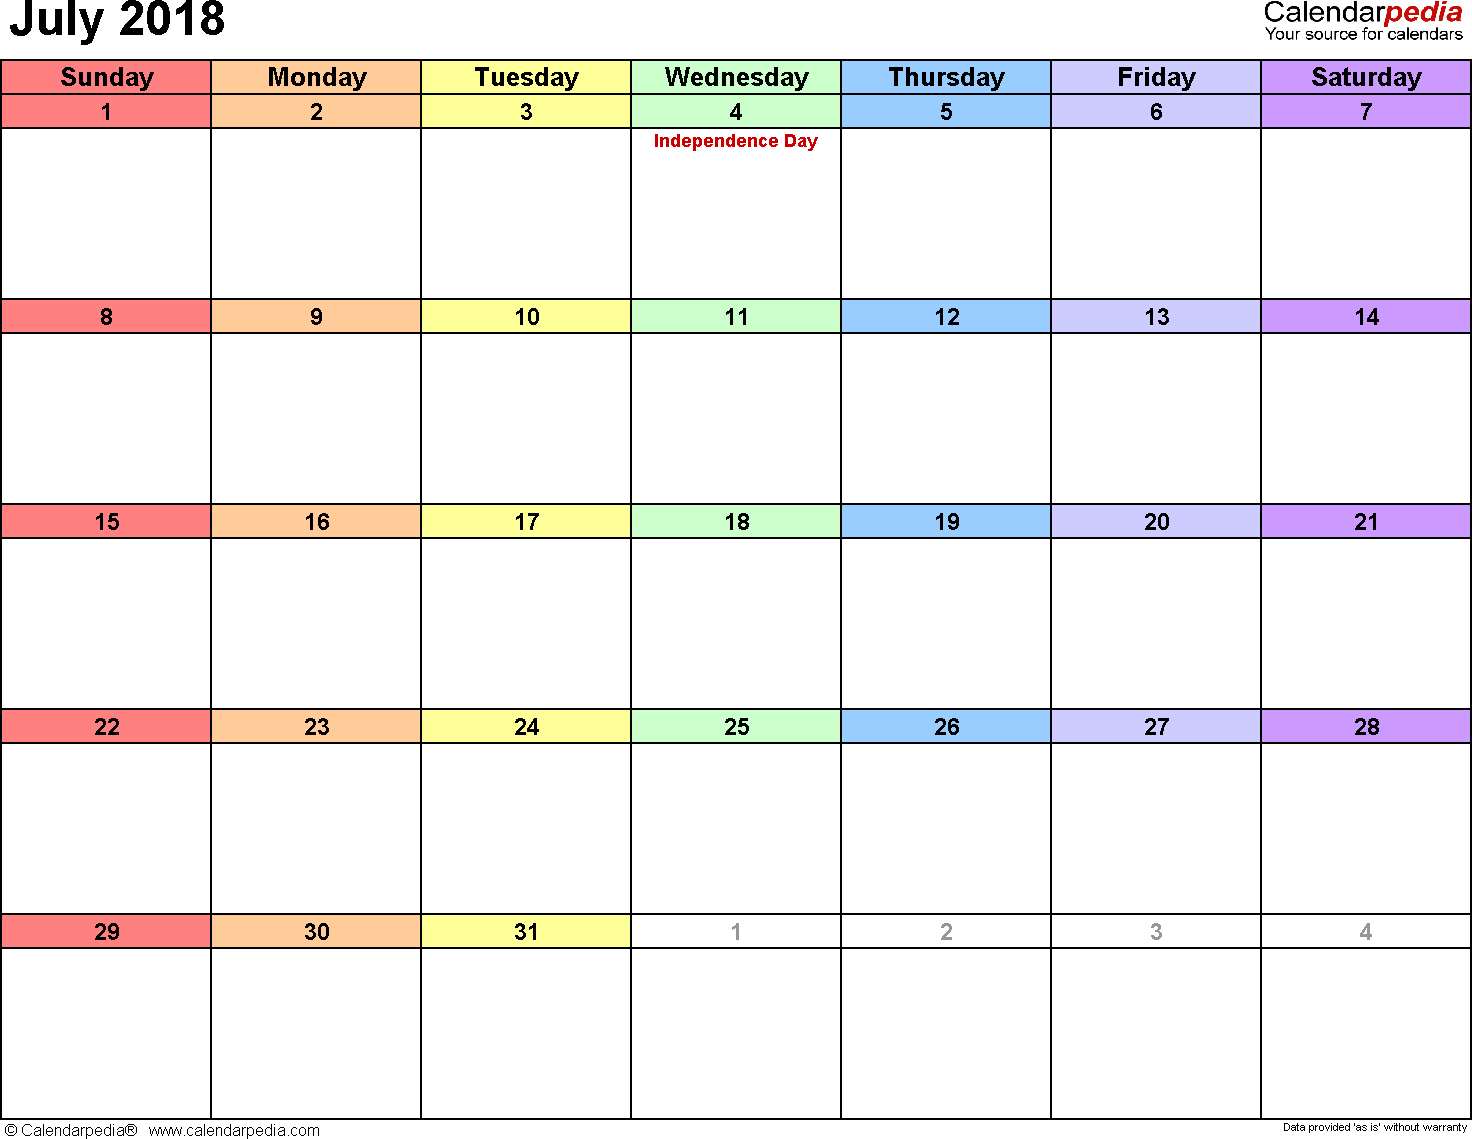 Calendar templates July 2018 in landscape format